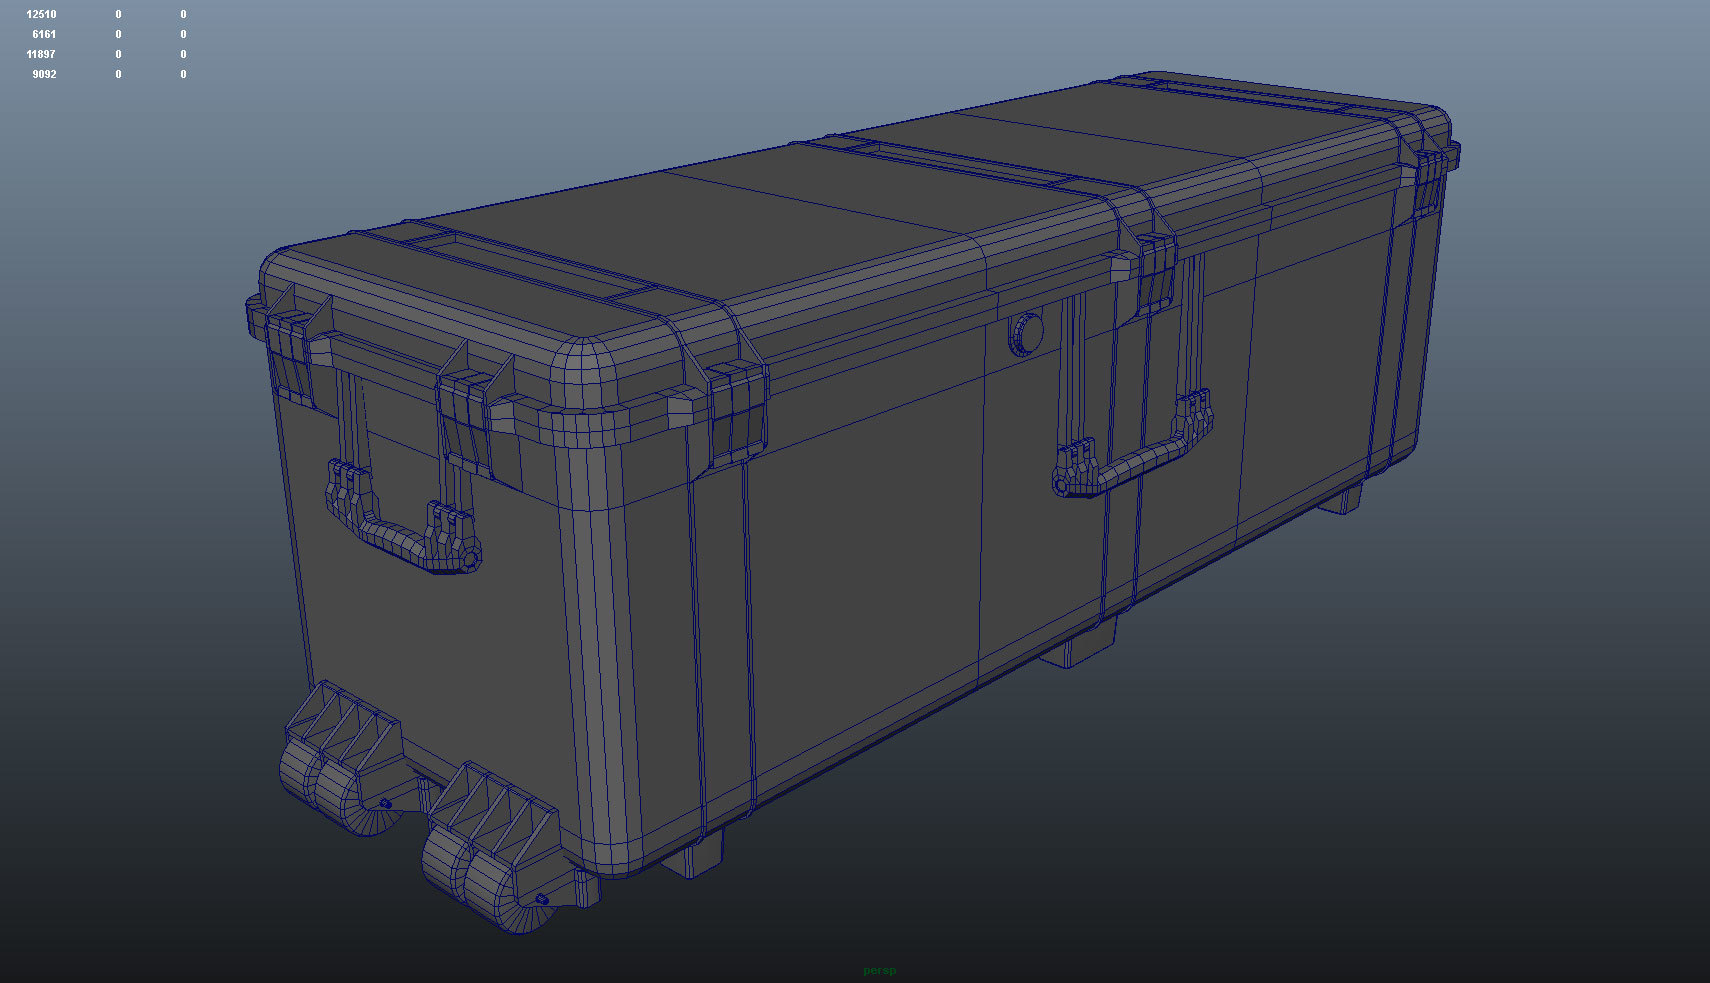 pelican-case-screenshot2.jpg